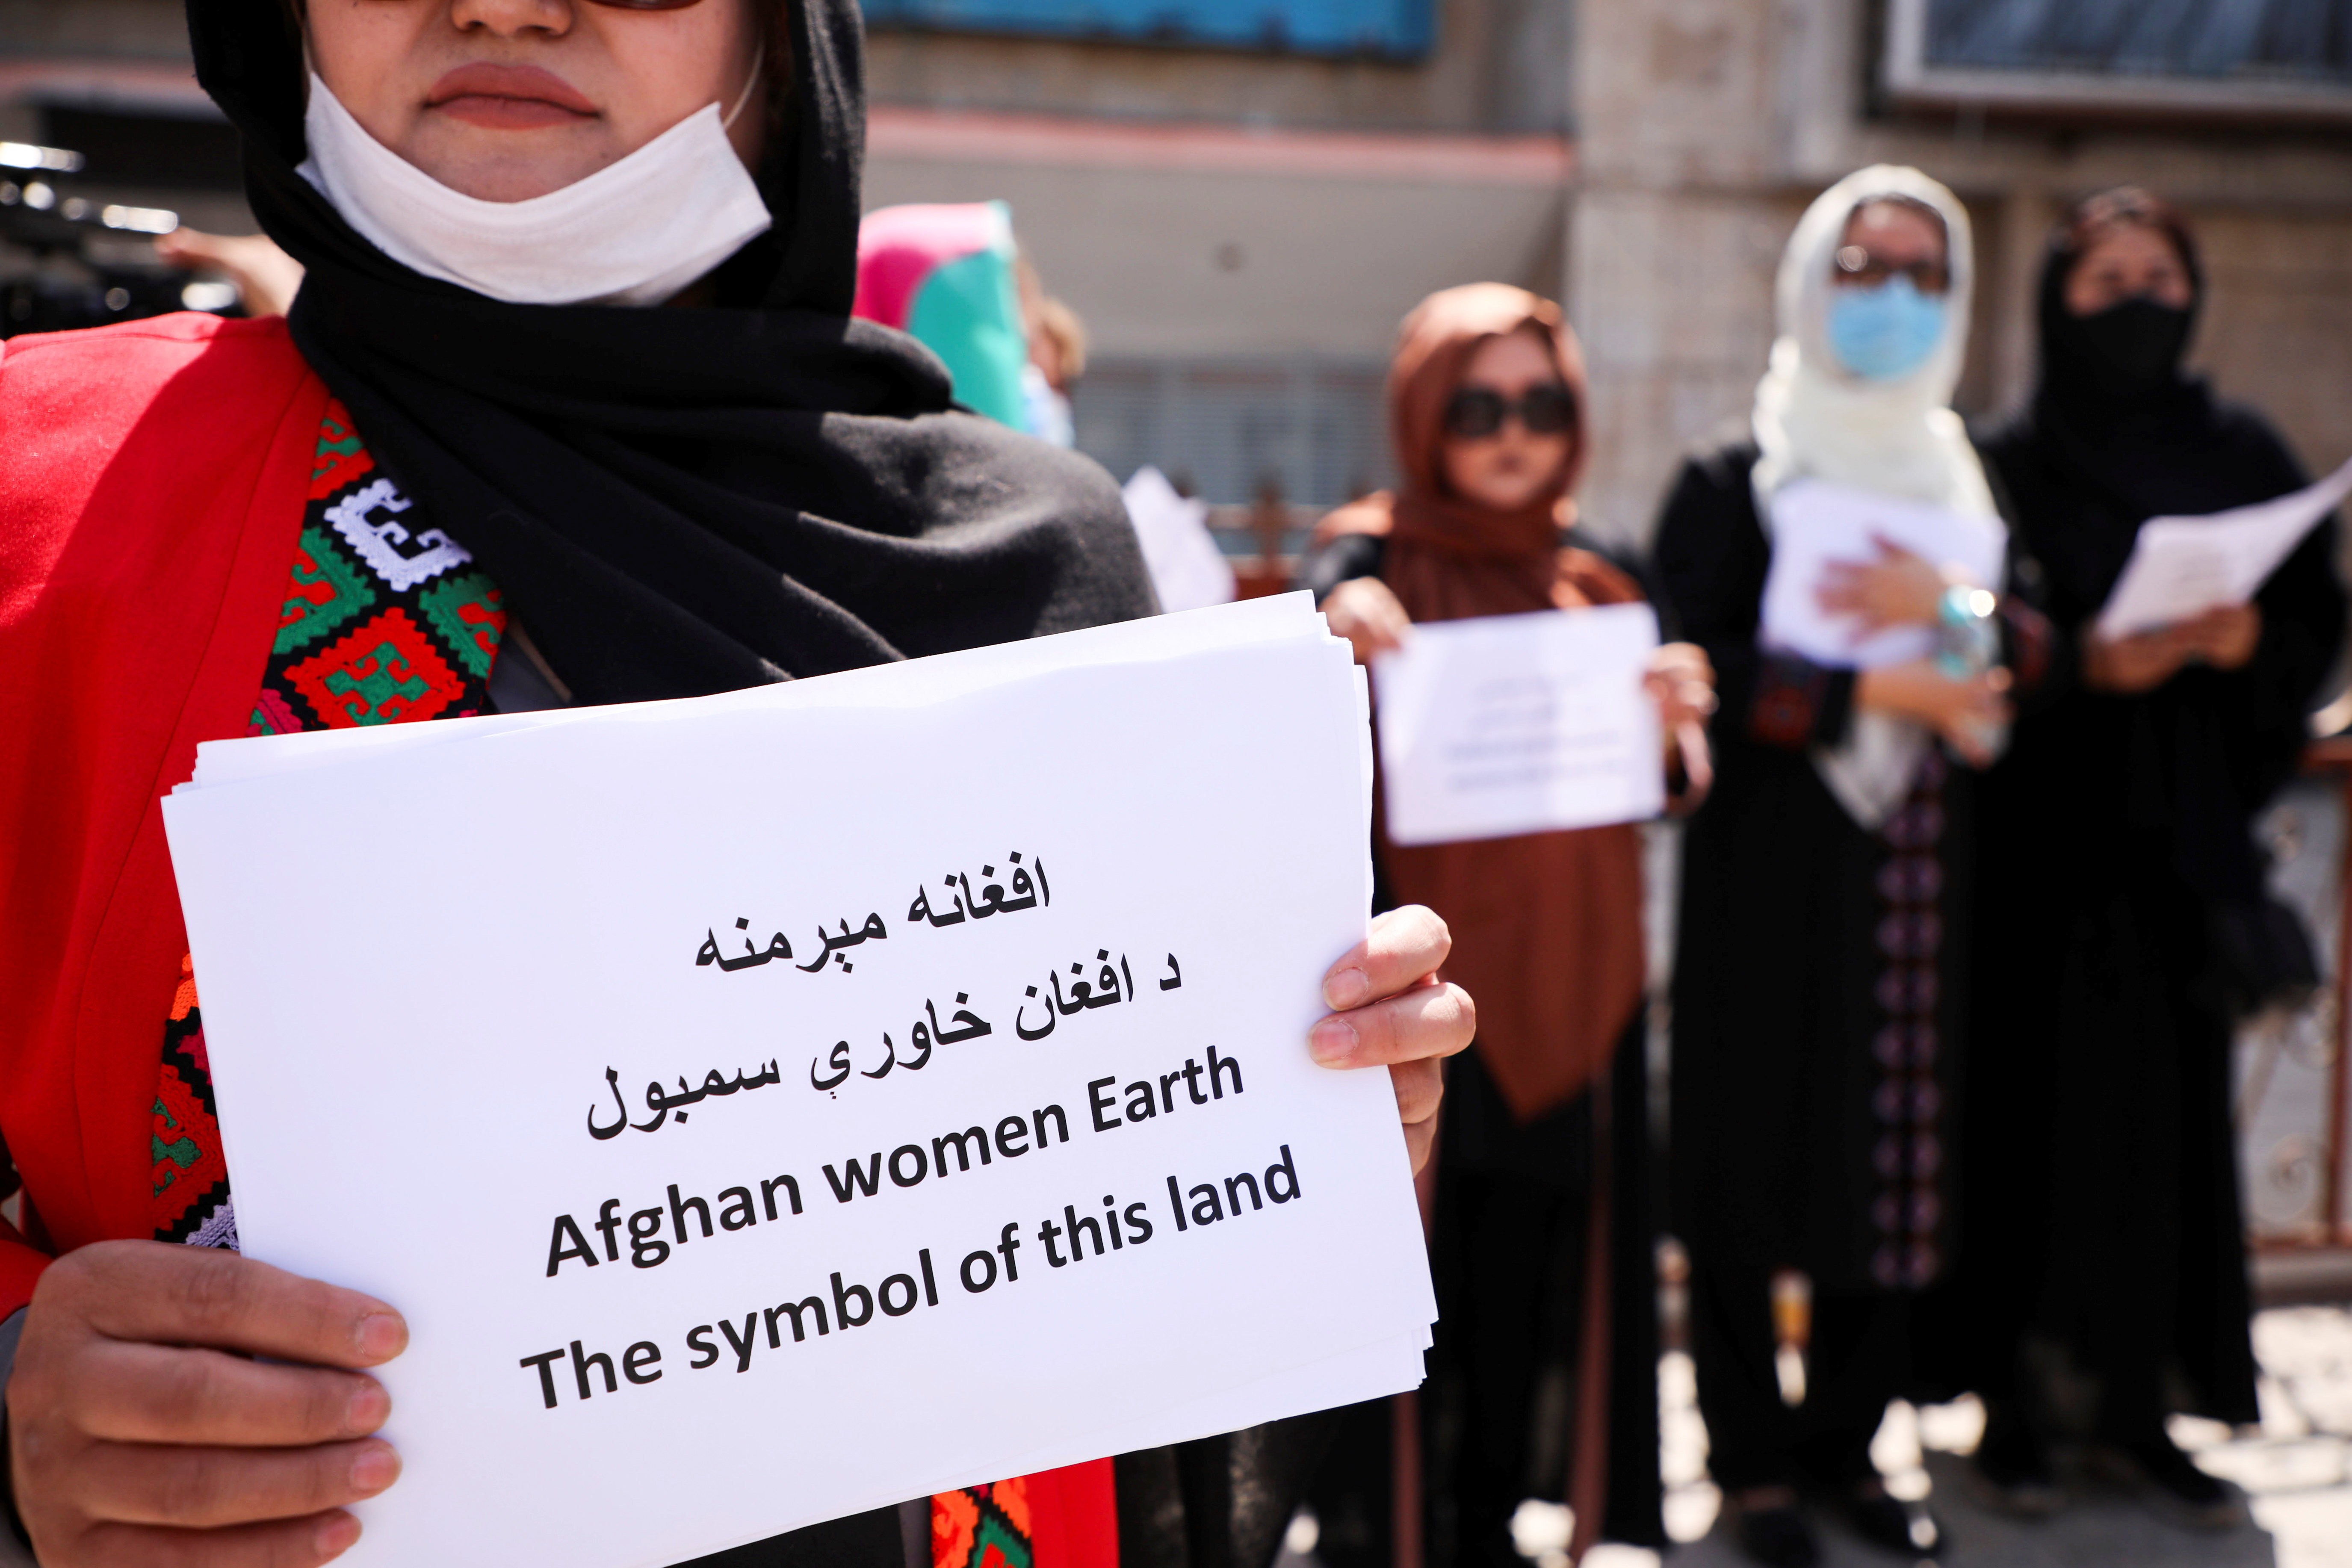 Afghan women's rights defenders and civil activists protest to call on the Taliban for the preservation of their achievements and education, in front of the presidential palace in Kabul, Afghanistan September 3, 2021. REUTERS/Stringer